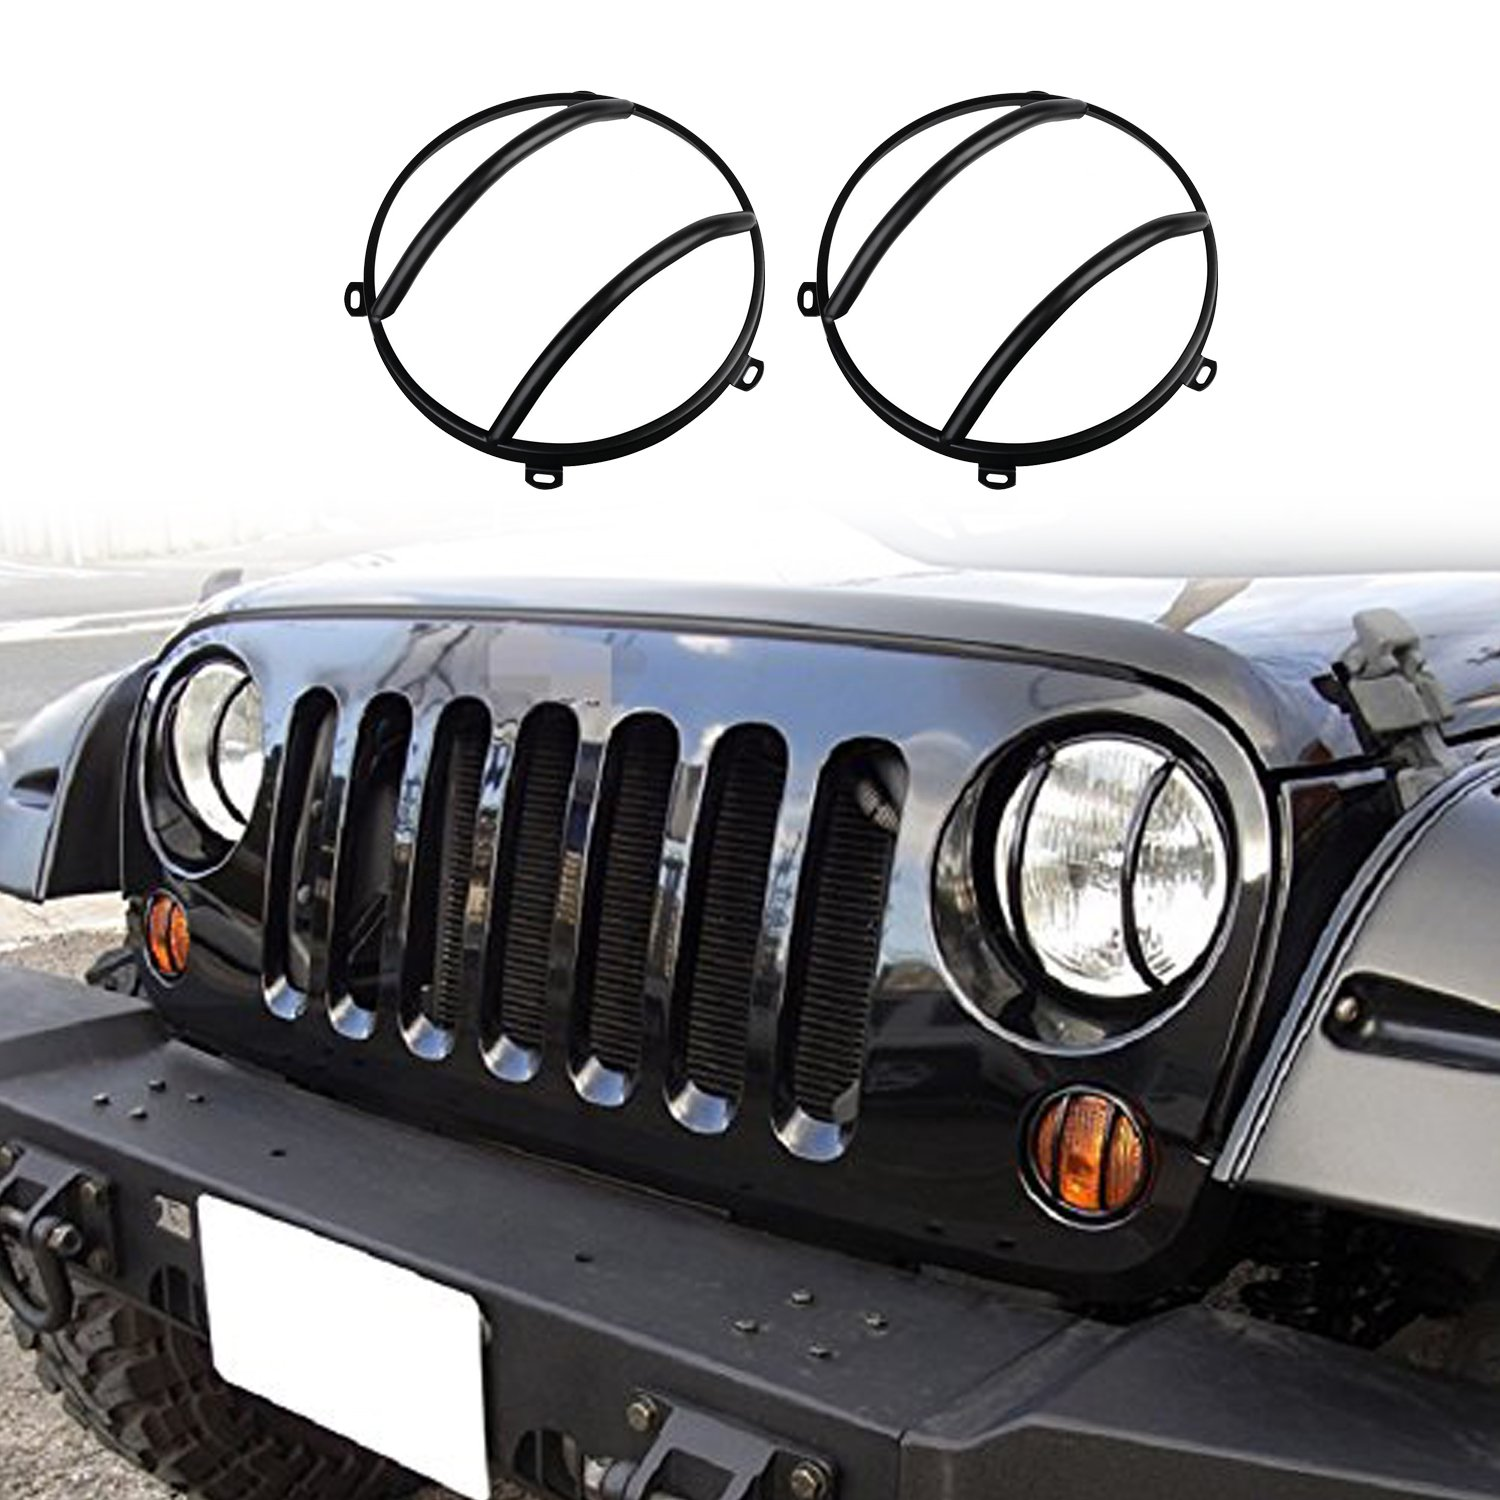 1 Pair DEF Silver Turn Signal Light Cover Trim for 2007-2017 Jeep JK Wrangler /& Unlimited